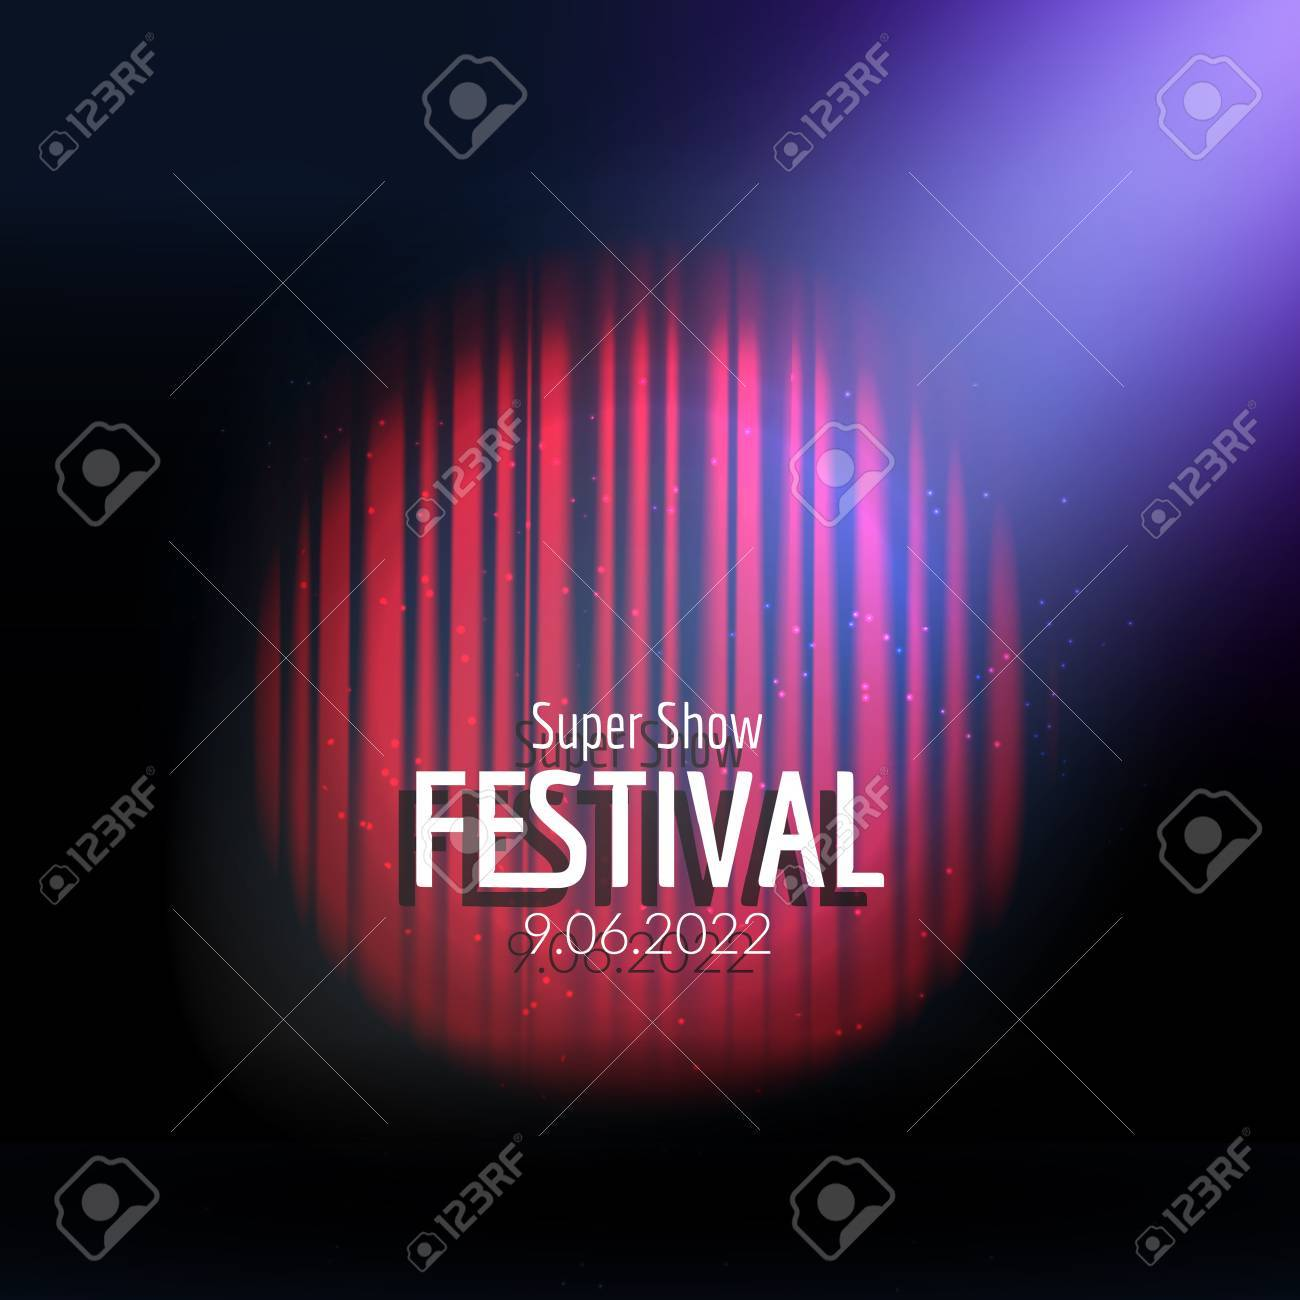 Vector Festive Design With Lights Poster For Concert Party